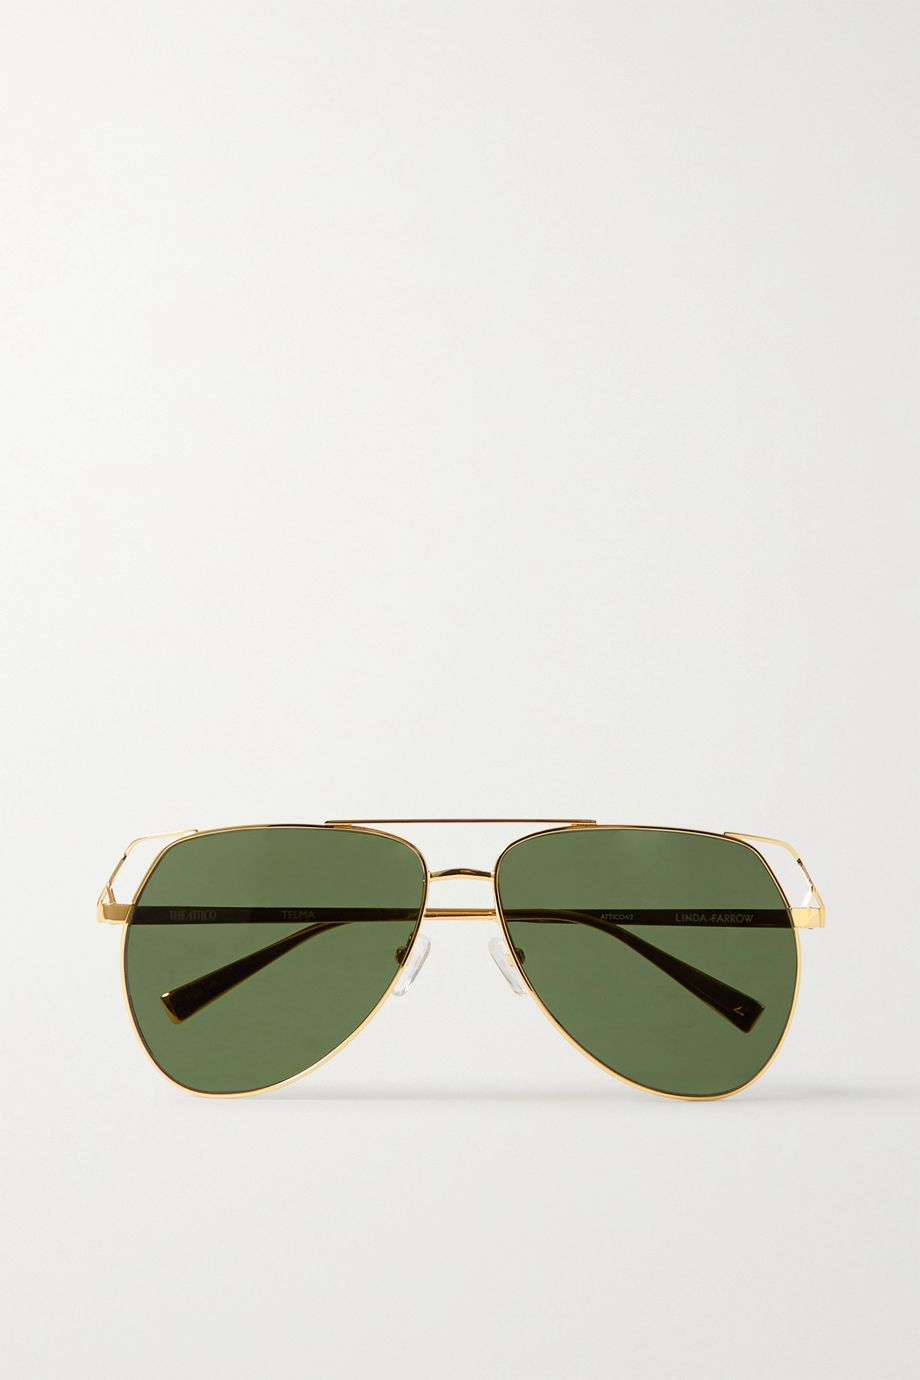 The Attico + Linda Farrow Telma aviator-style gold-tone sunglasses